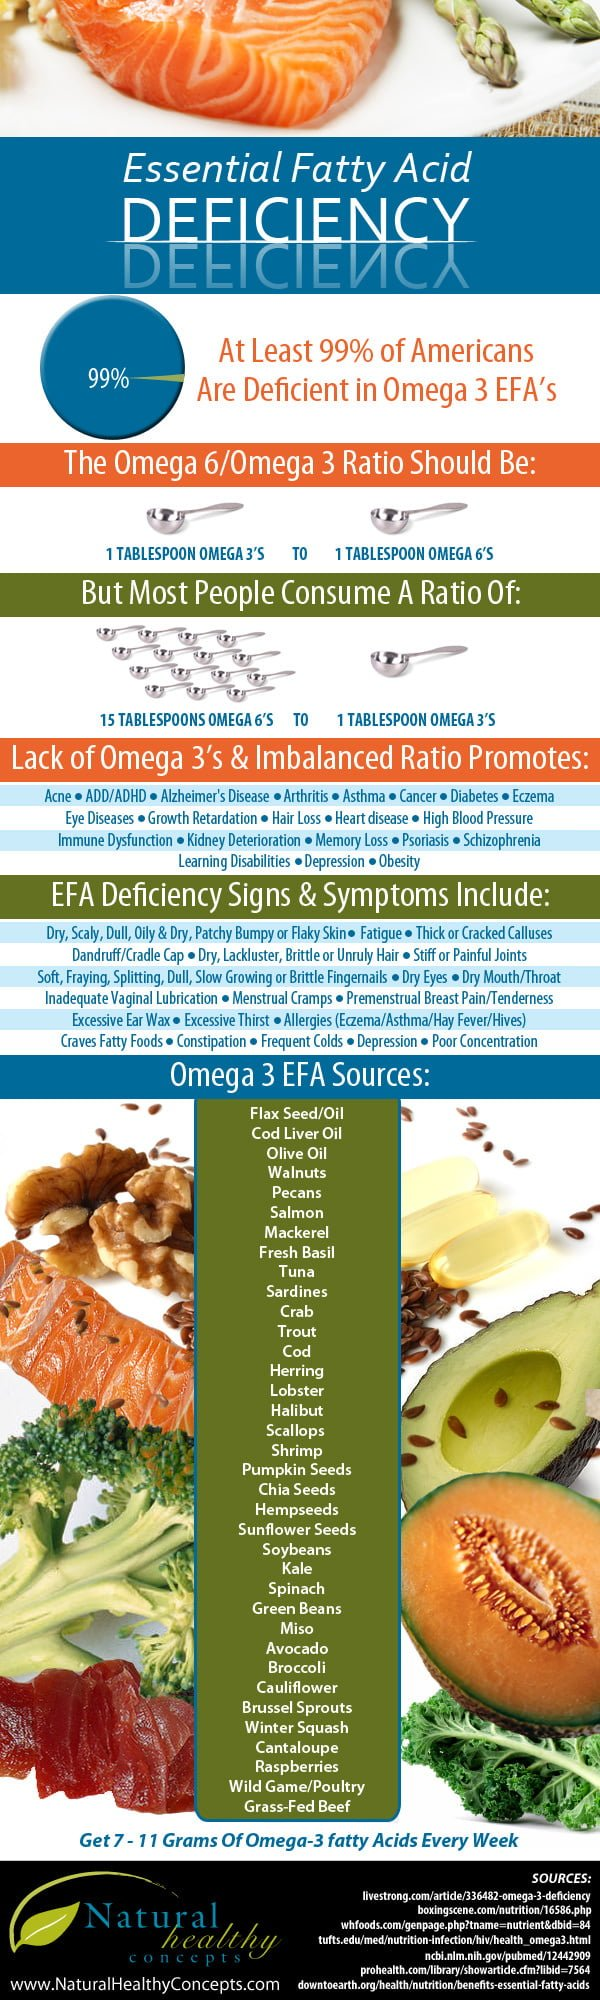 essential-fatty-acid-deficiency-infographic